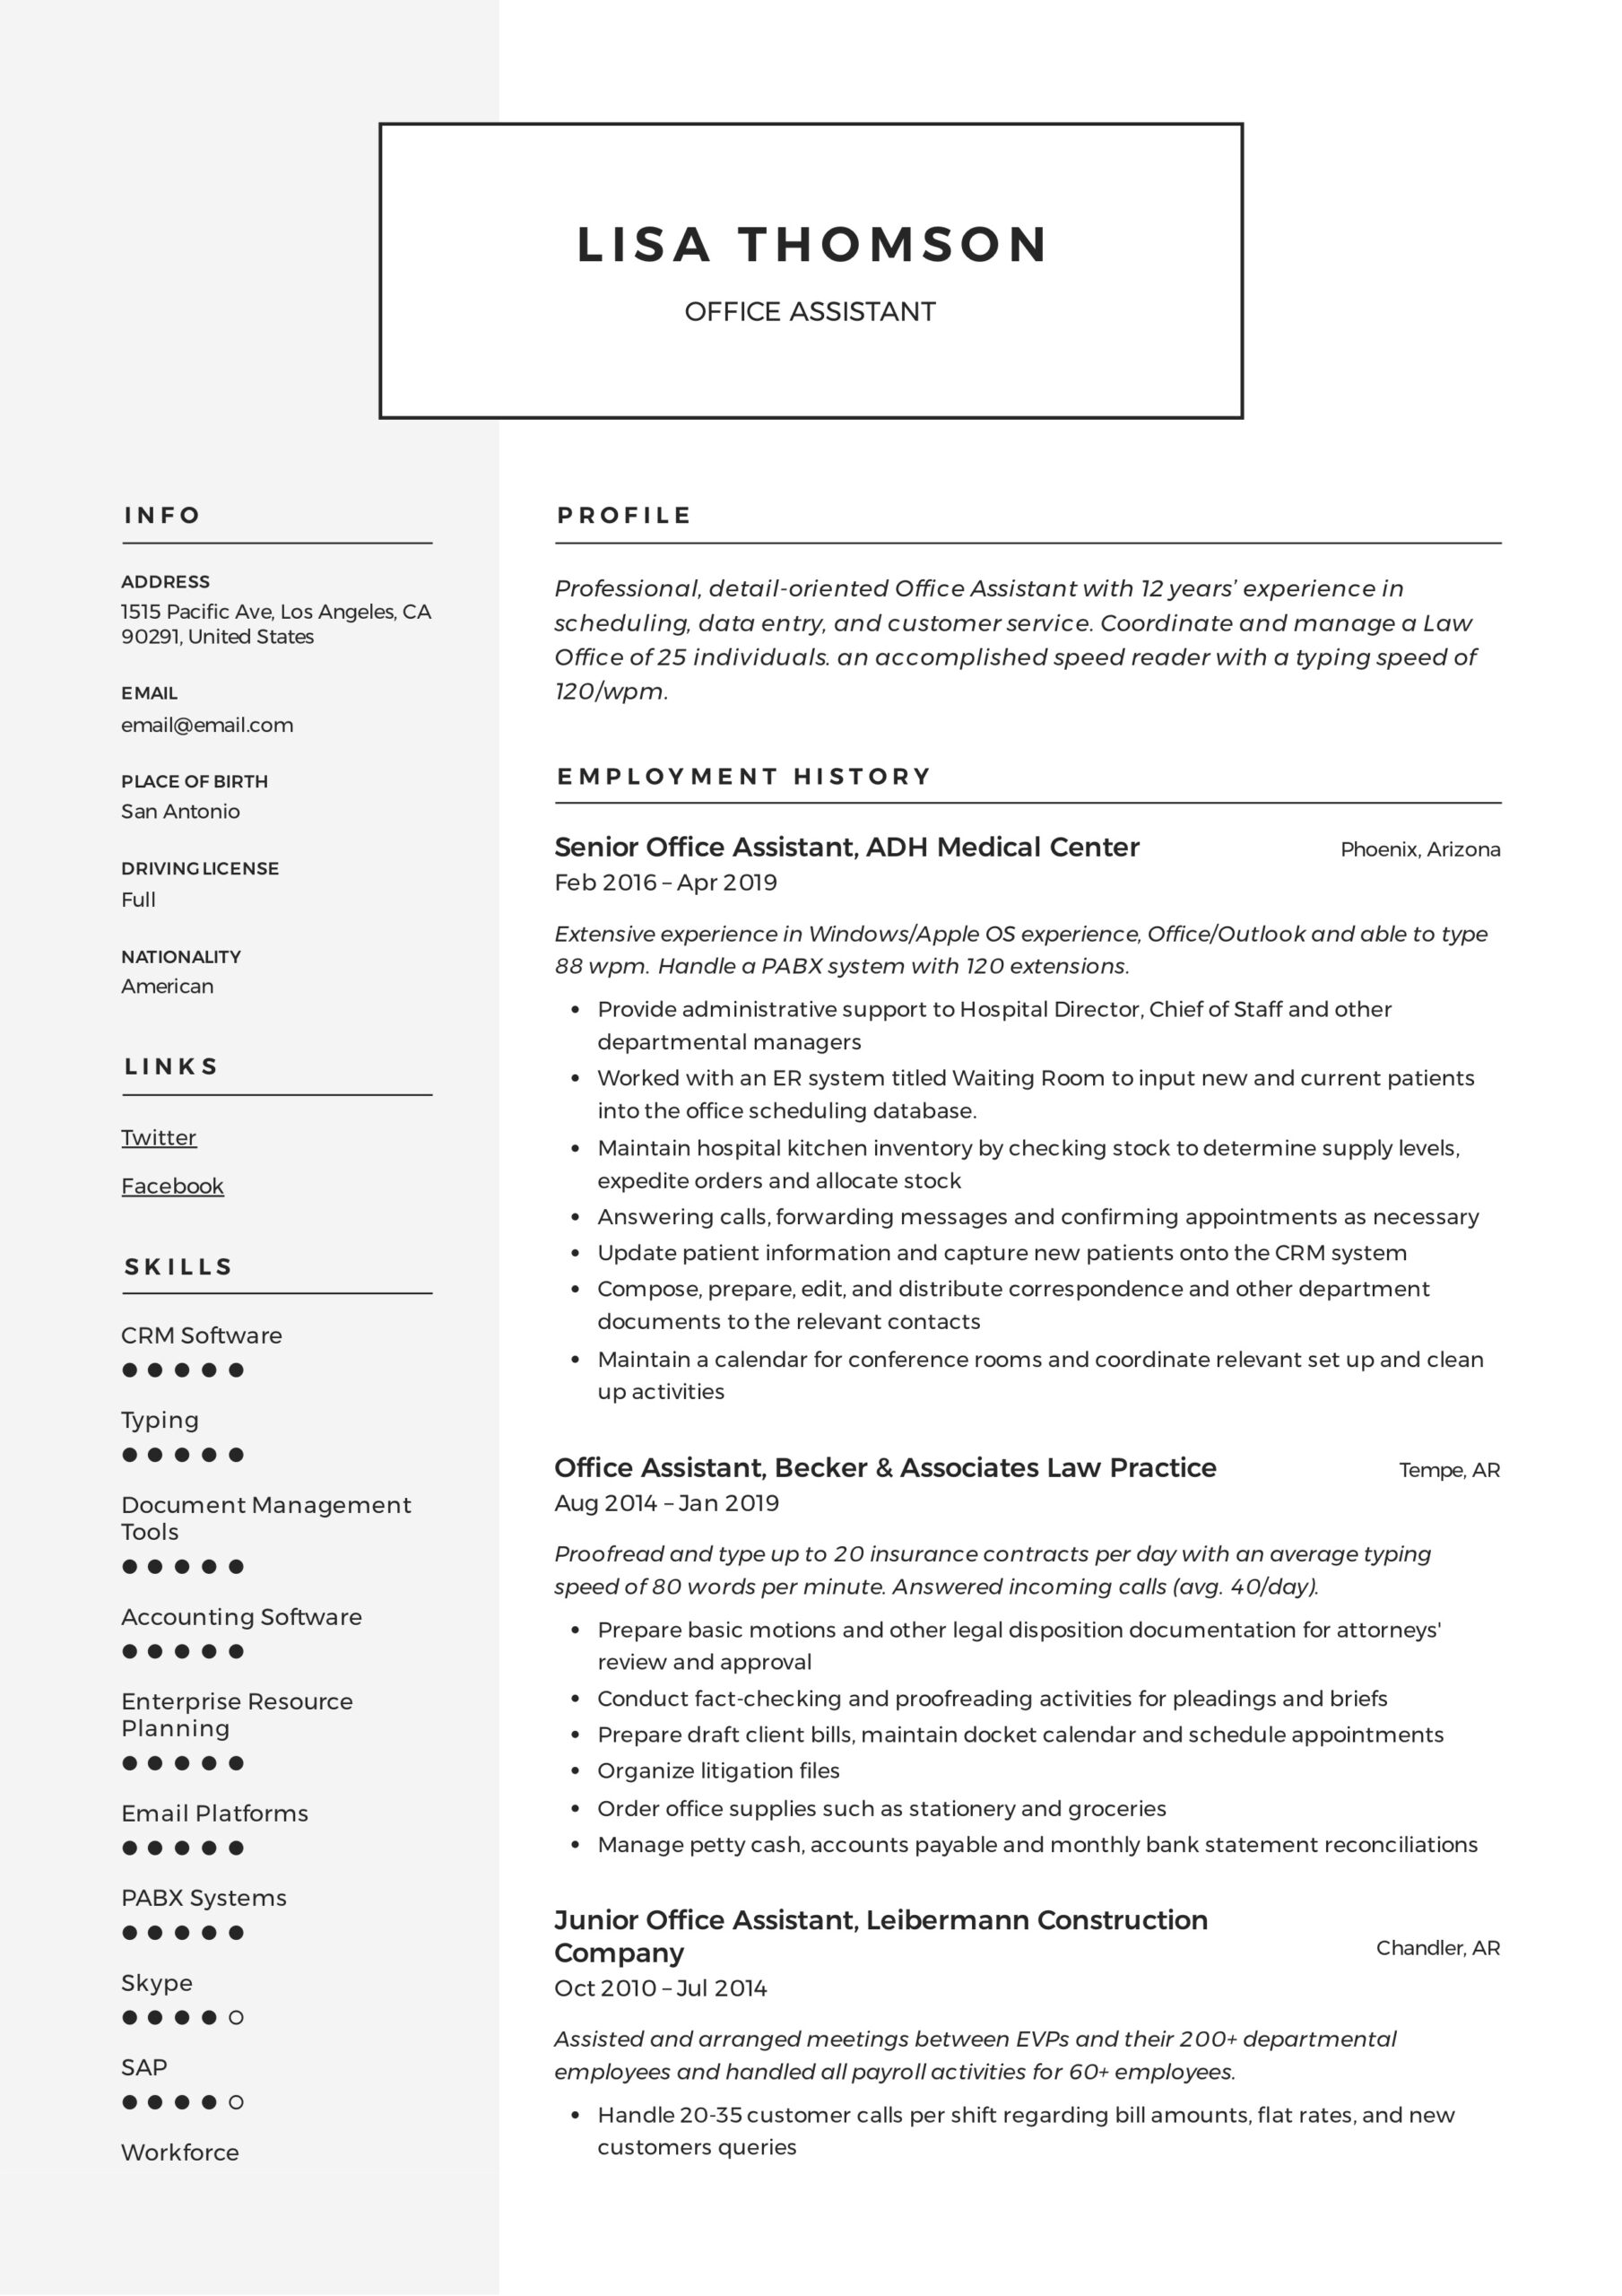 office assistant resume writing guide templates summary lisa thomson zoology teacher Resume Office Assistant Resume Summary